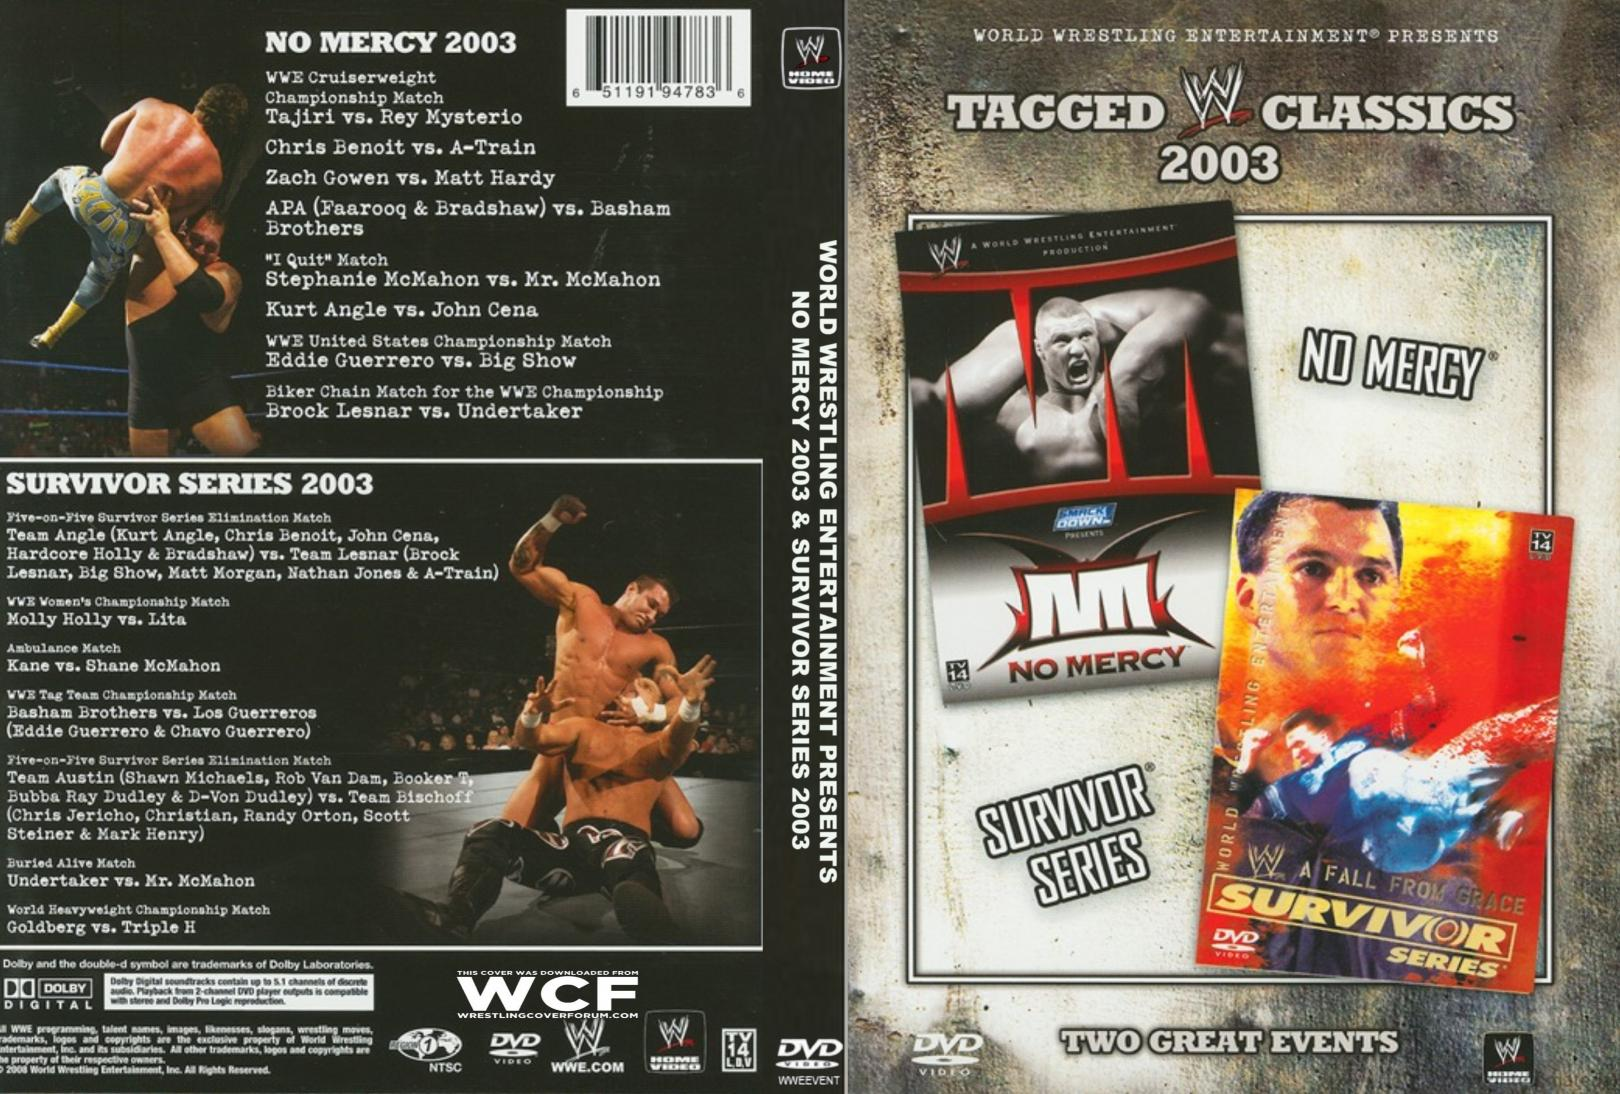 WWE%20TAGGED%20CLASSICS%202003%20NO%20MERCY%20&%20SURVIVOR%20SERIES